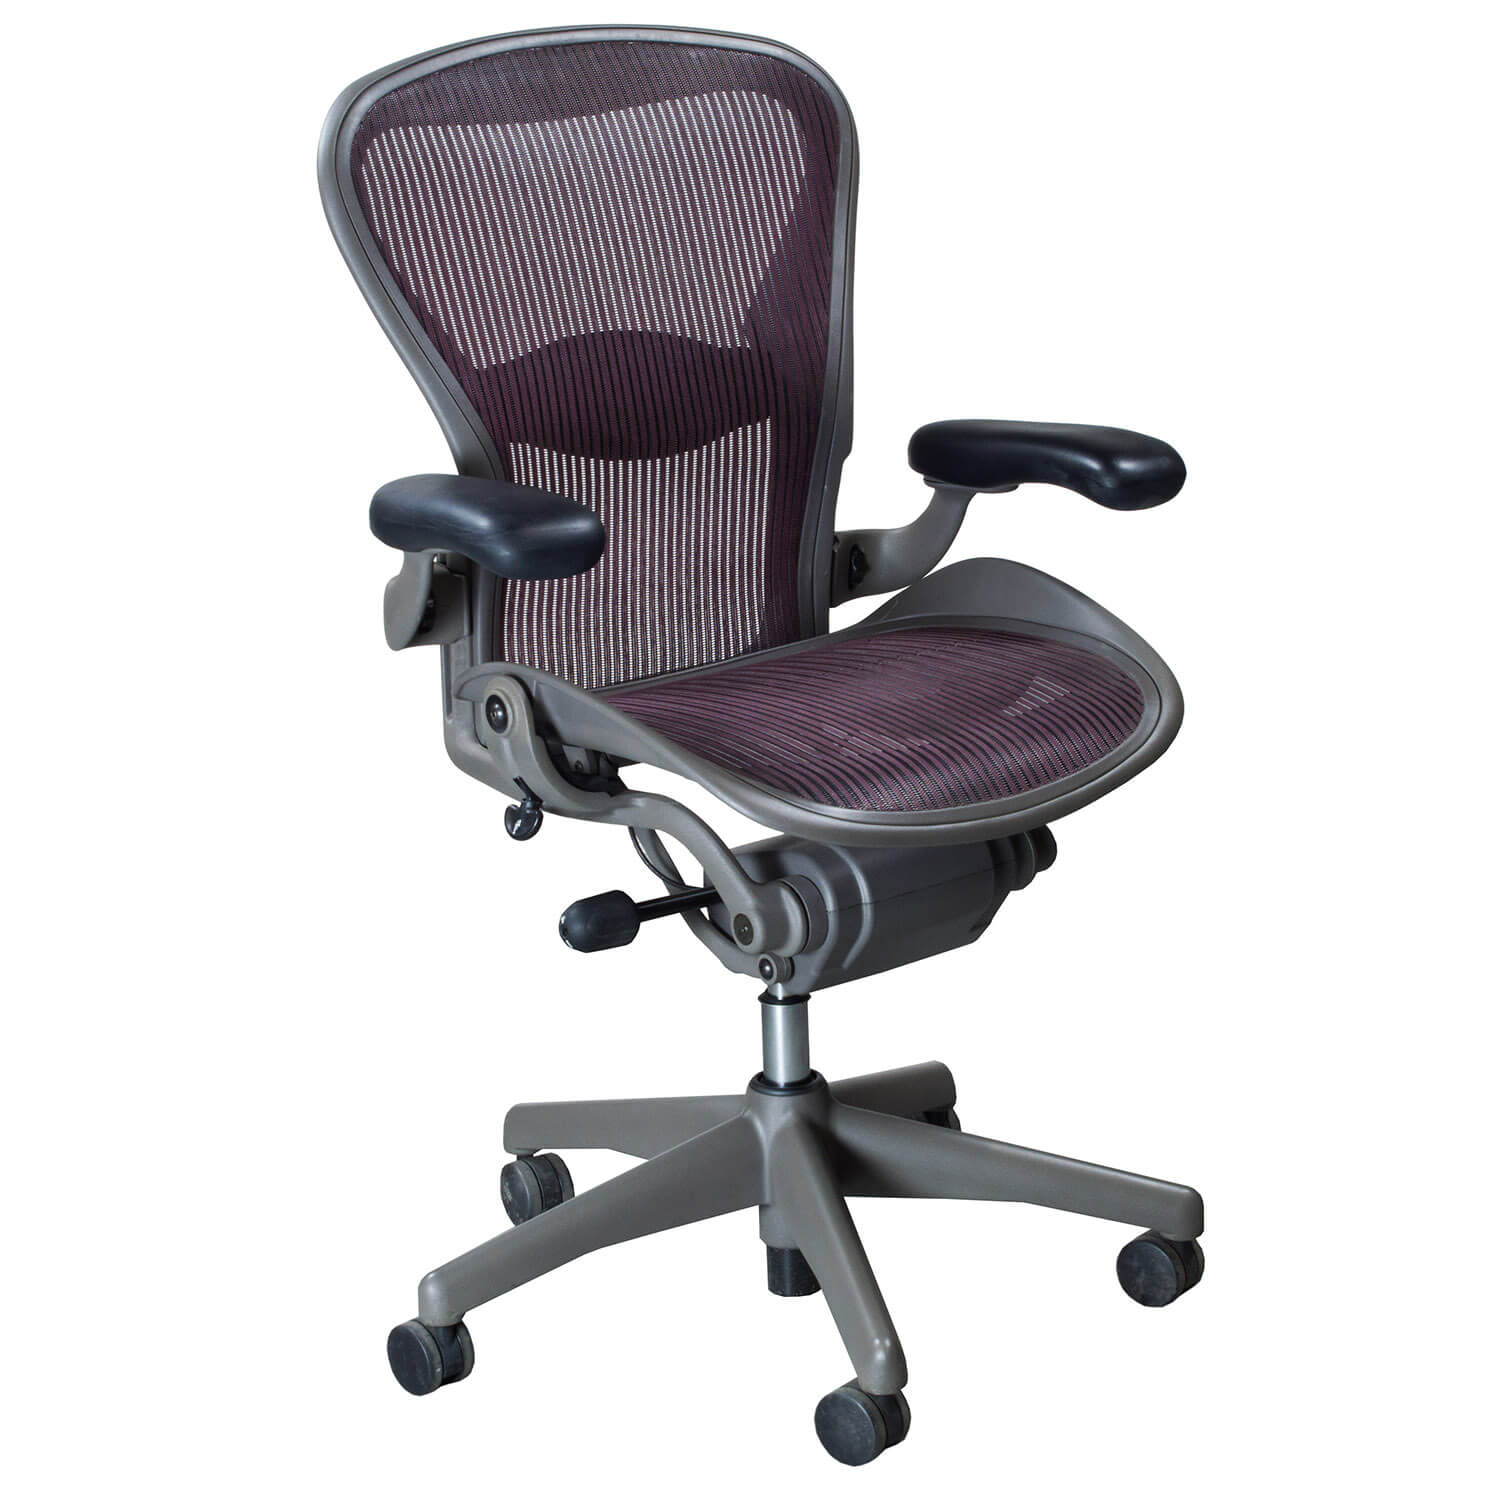 Herman Miller Aeron Chair Sizes Picture 1 9 Herman